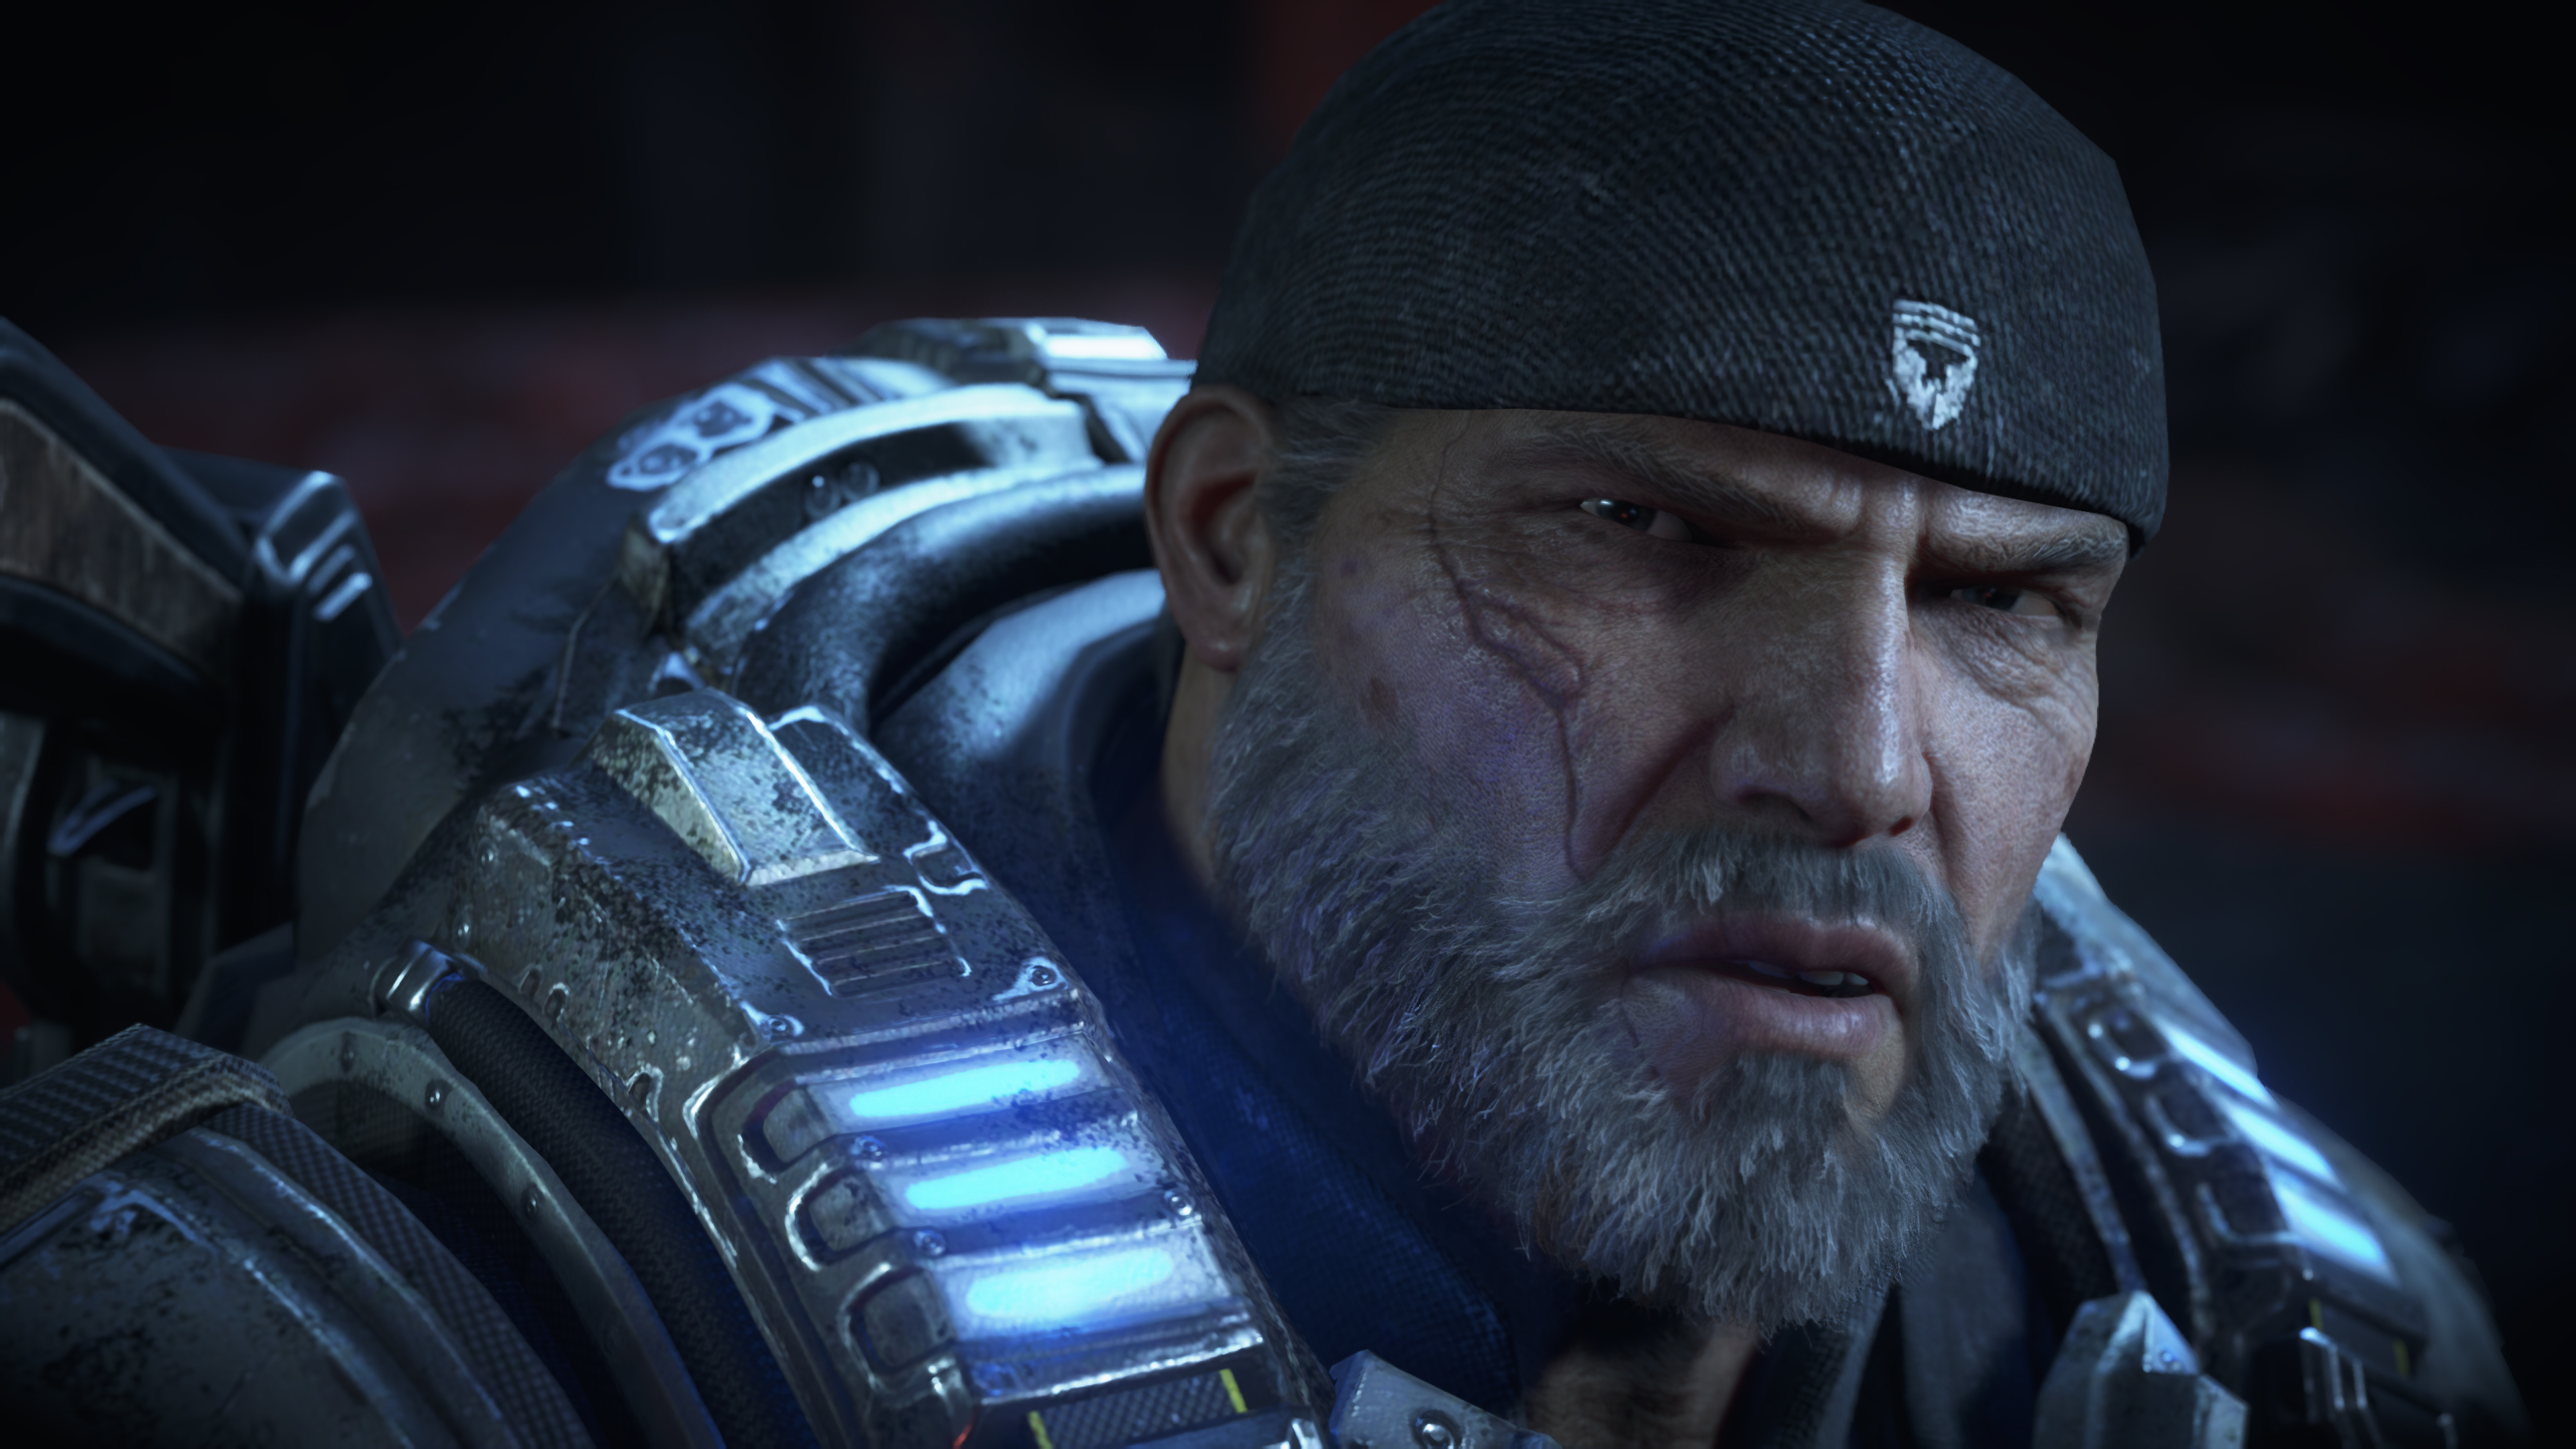 Marcus Fenix Returns In Gears Of War 4 In The Best Way